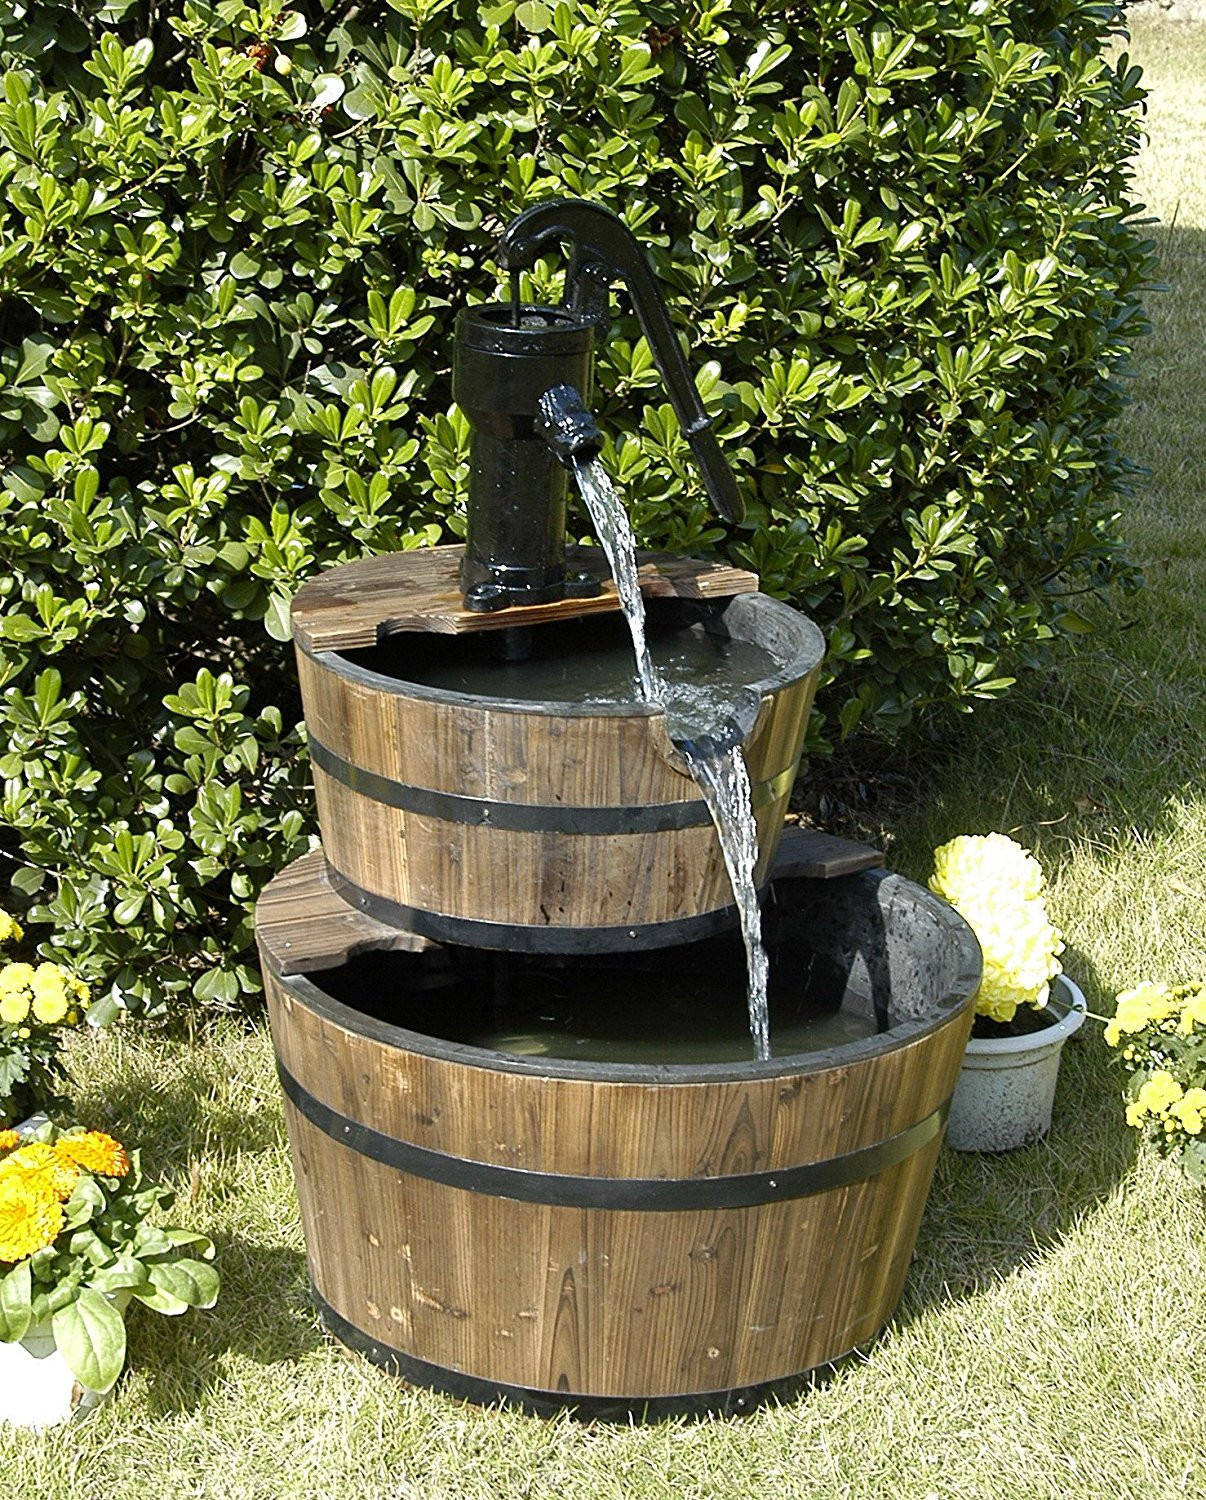 Best ideas about Outdoor Water Fountain . Save or Pin Rustic Three Tier Apple Barrel Outdoor Water Fountain Now.